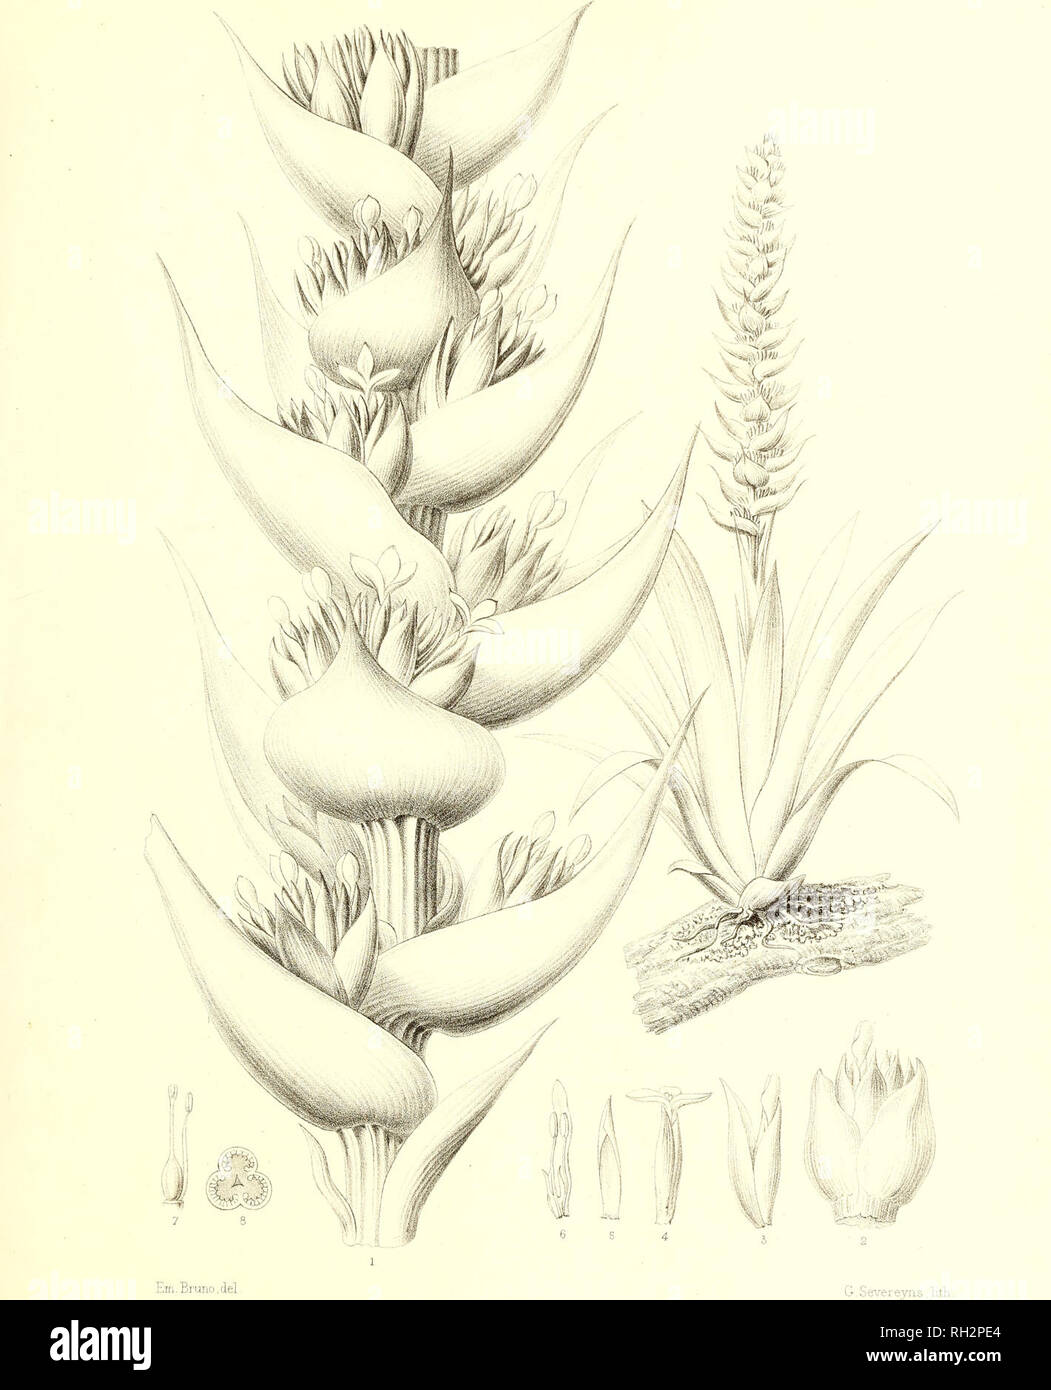 . Bromeliaceae andreanae : description et histoire des broméliacées récoltées dans la Colombie, l'Ecuador et le Venezuela. Bromeliaceae; Botany. BROMELIACEE ANDREA NE Pl. XXXVII.. TILLANDSIA FASTUOSA , Ed. André. Please note that these images are extracted from scanned page images that may have been digitally enhanced for readability - coloration and appearance of these illustrations may not perfectly resemble the original work.. André, Edouard François, 1840-1911. Paris : Librairie Agricole Stock Photo